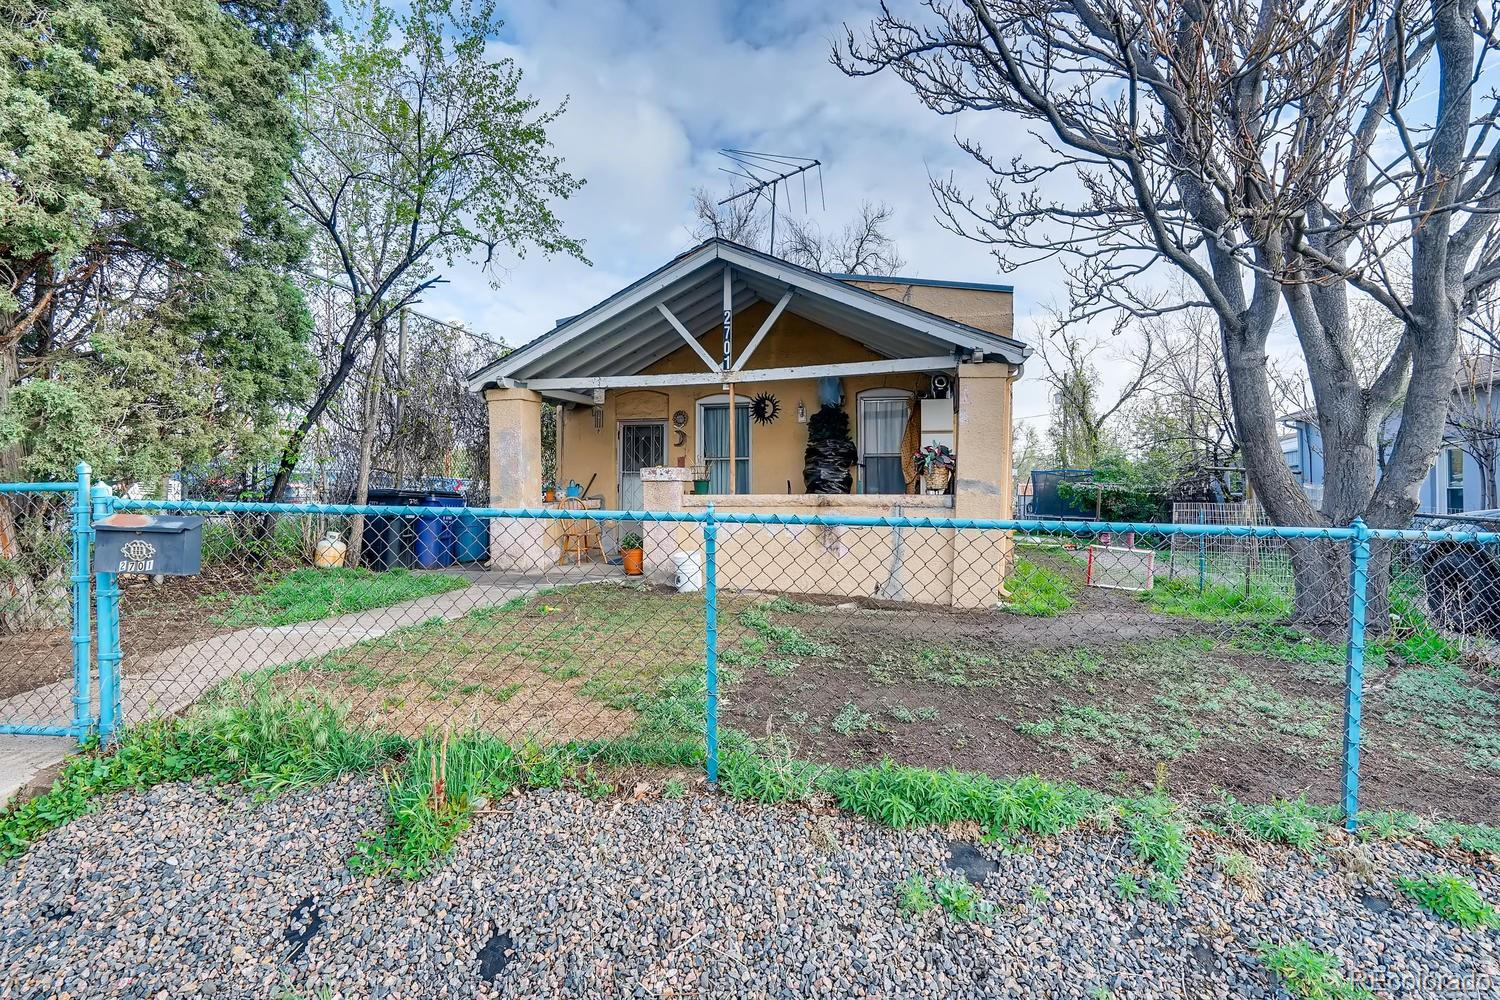 2701 W 12th Avenue Property Photo - Denver, CO real estate listing